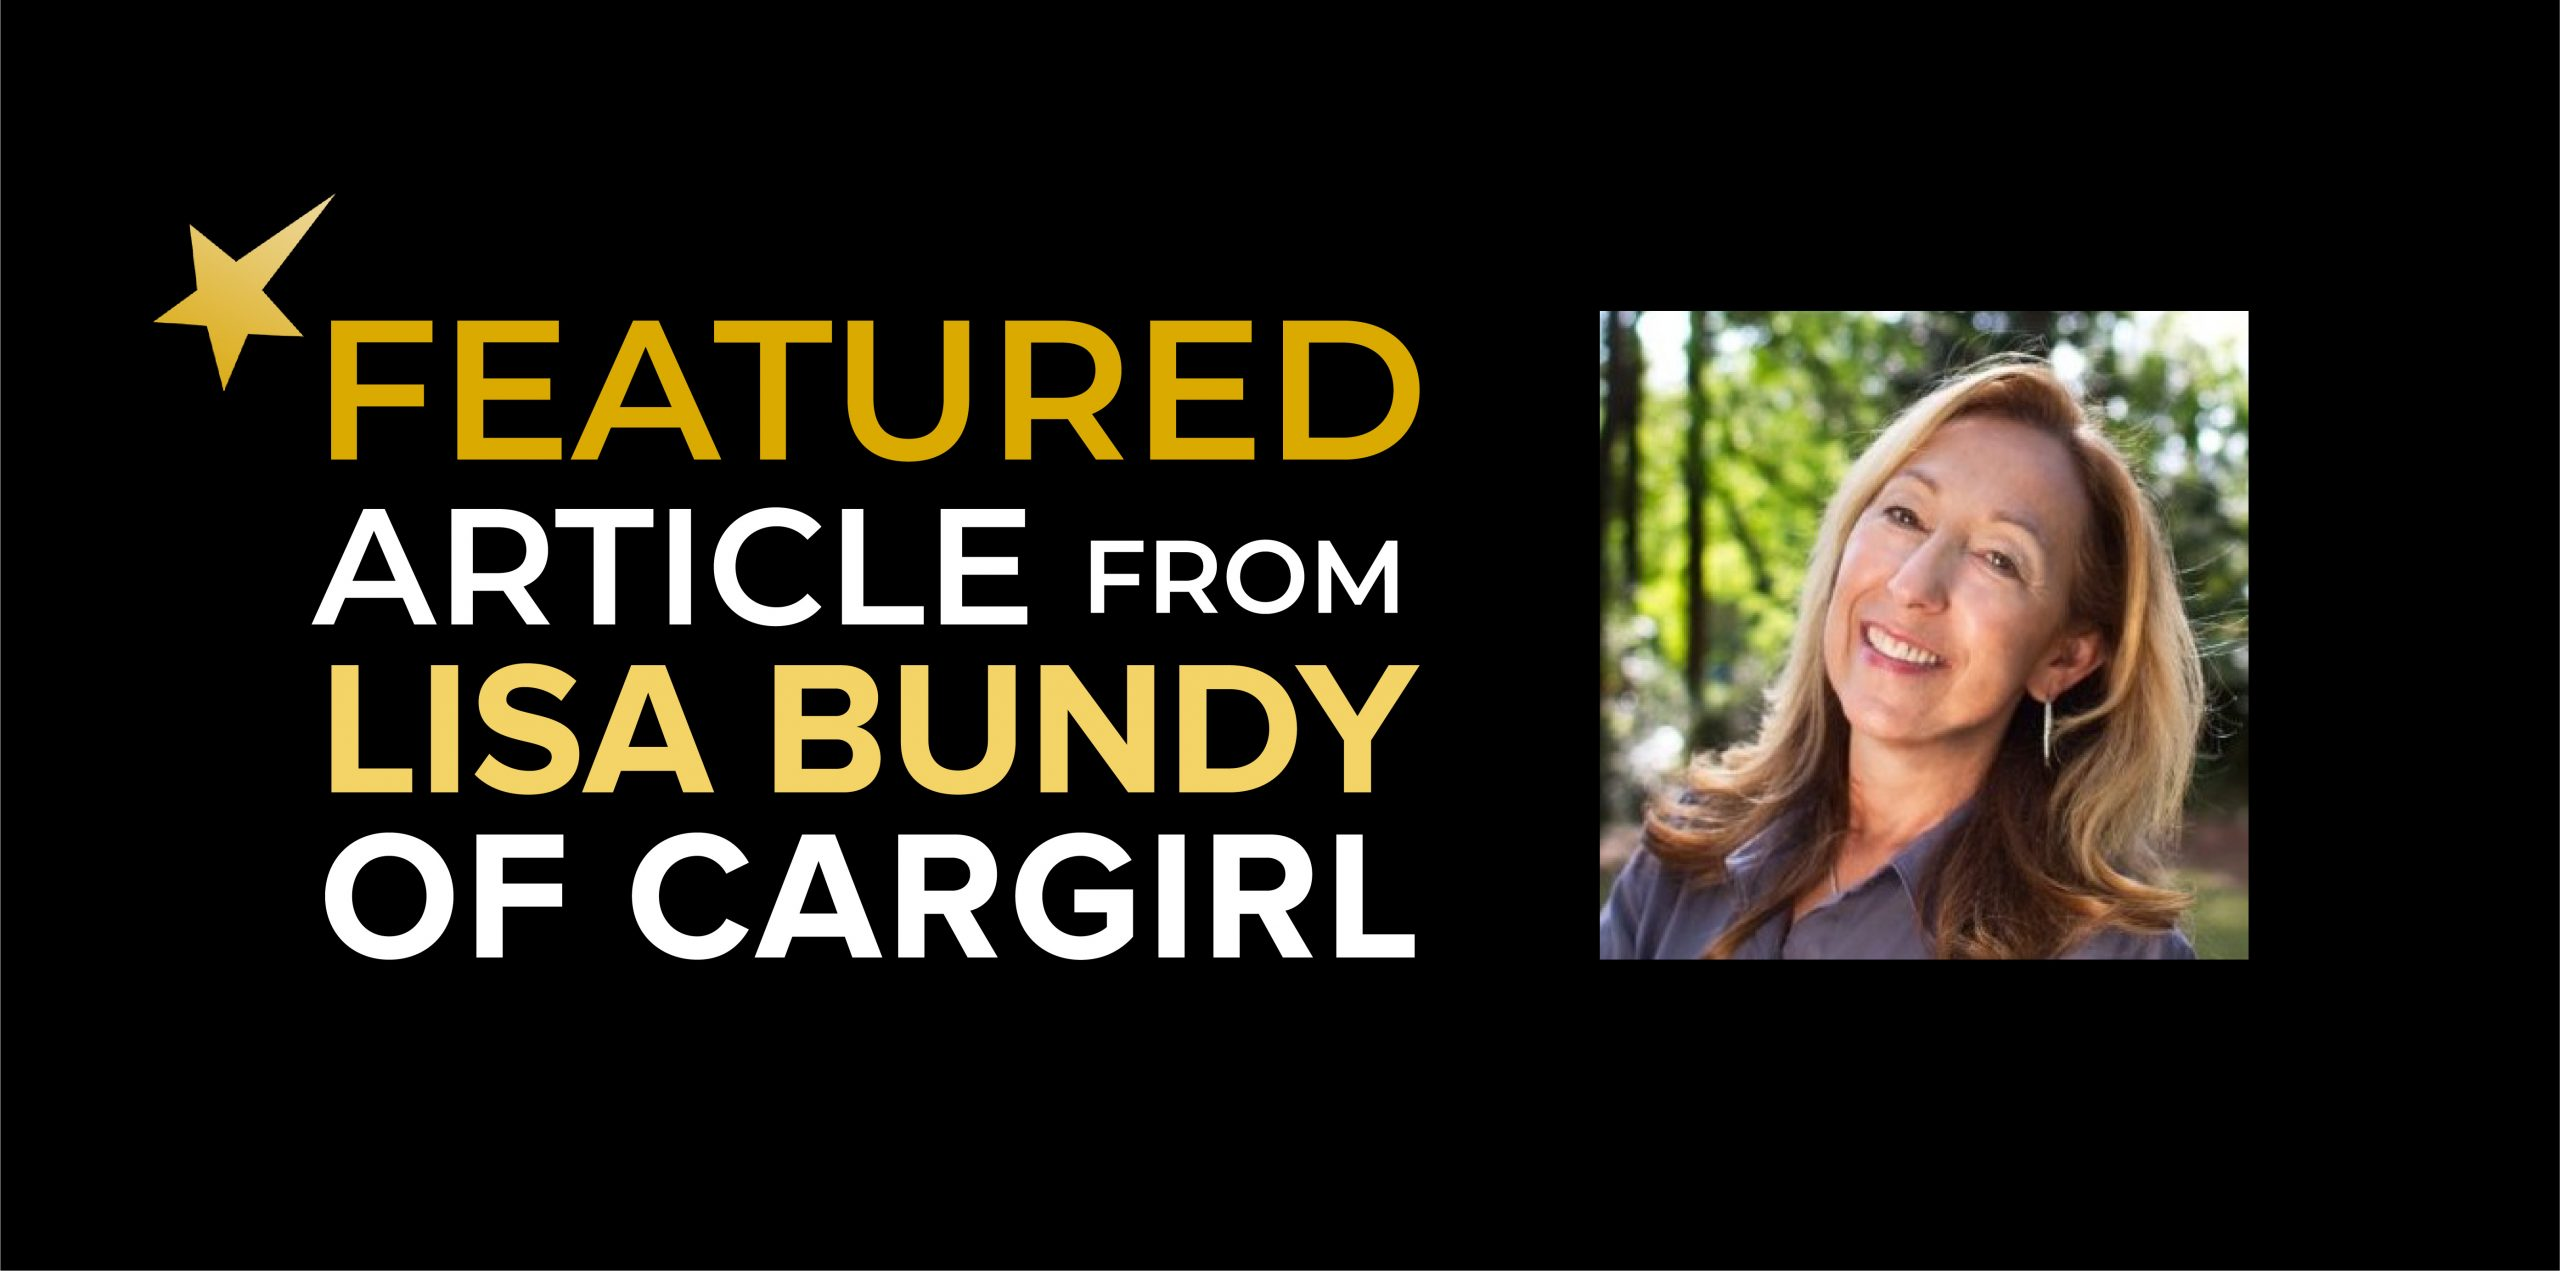 Featured Article from Lisa Bundy of Cargirl